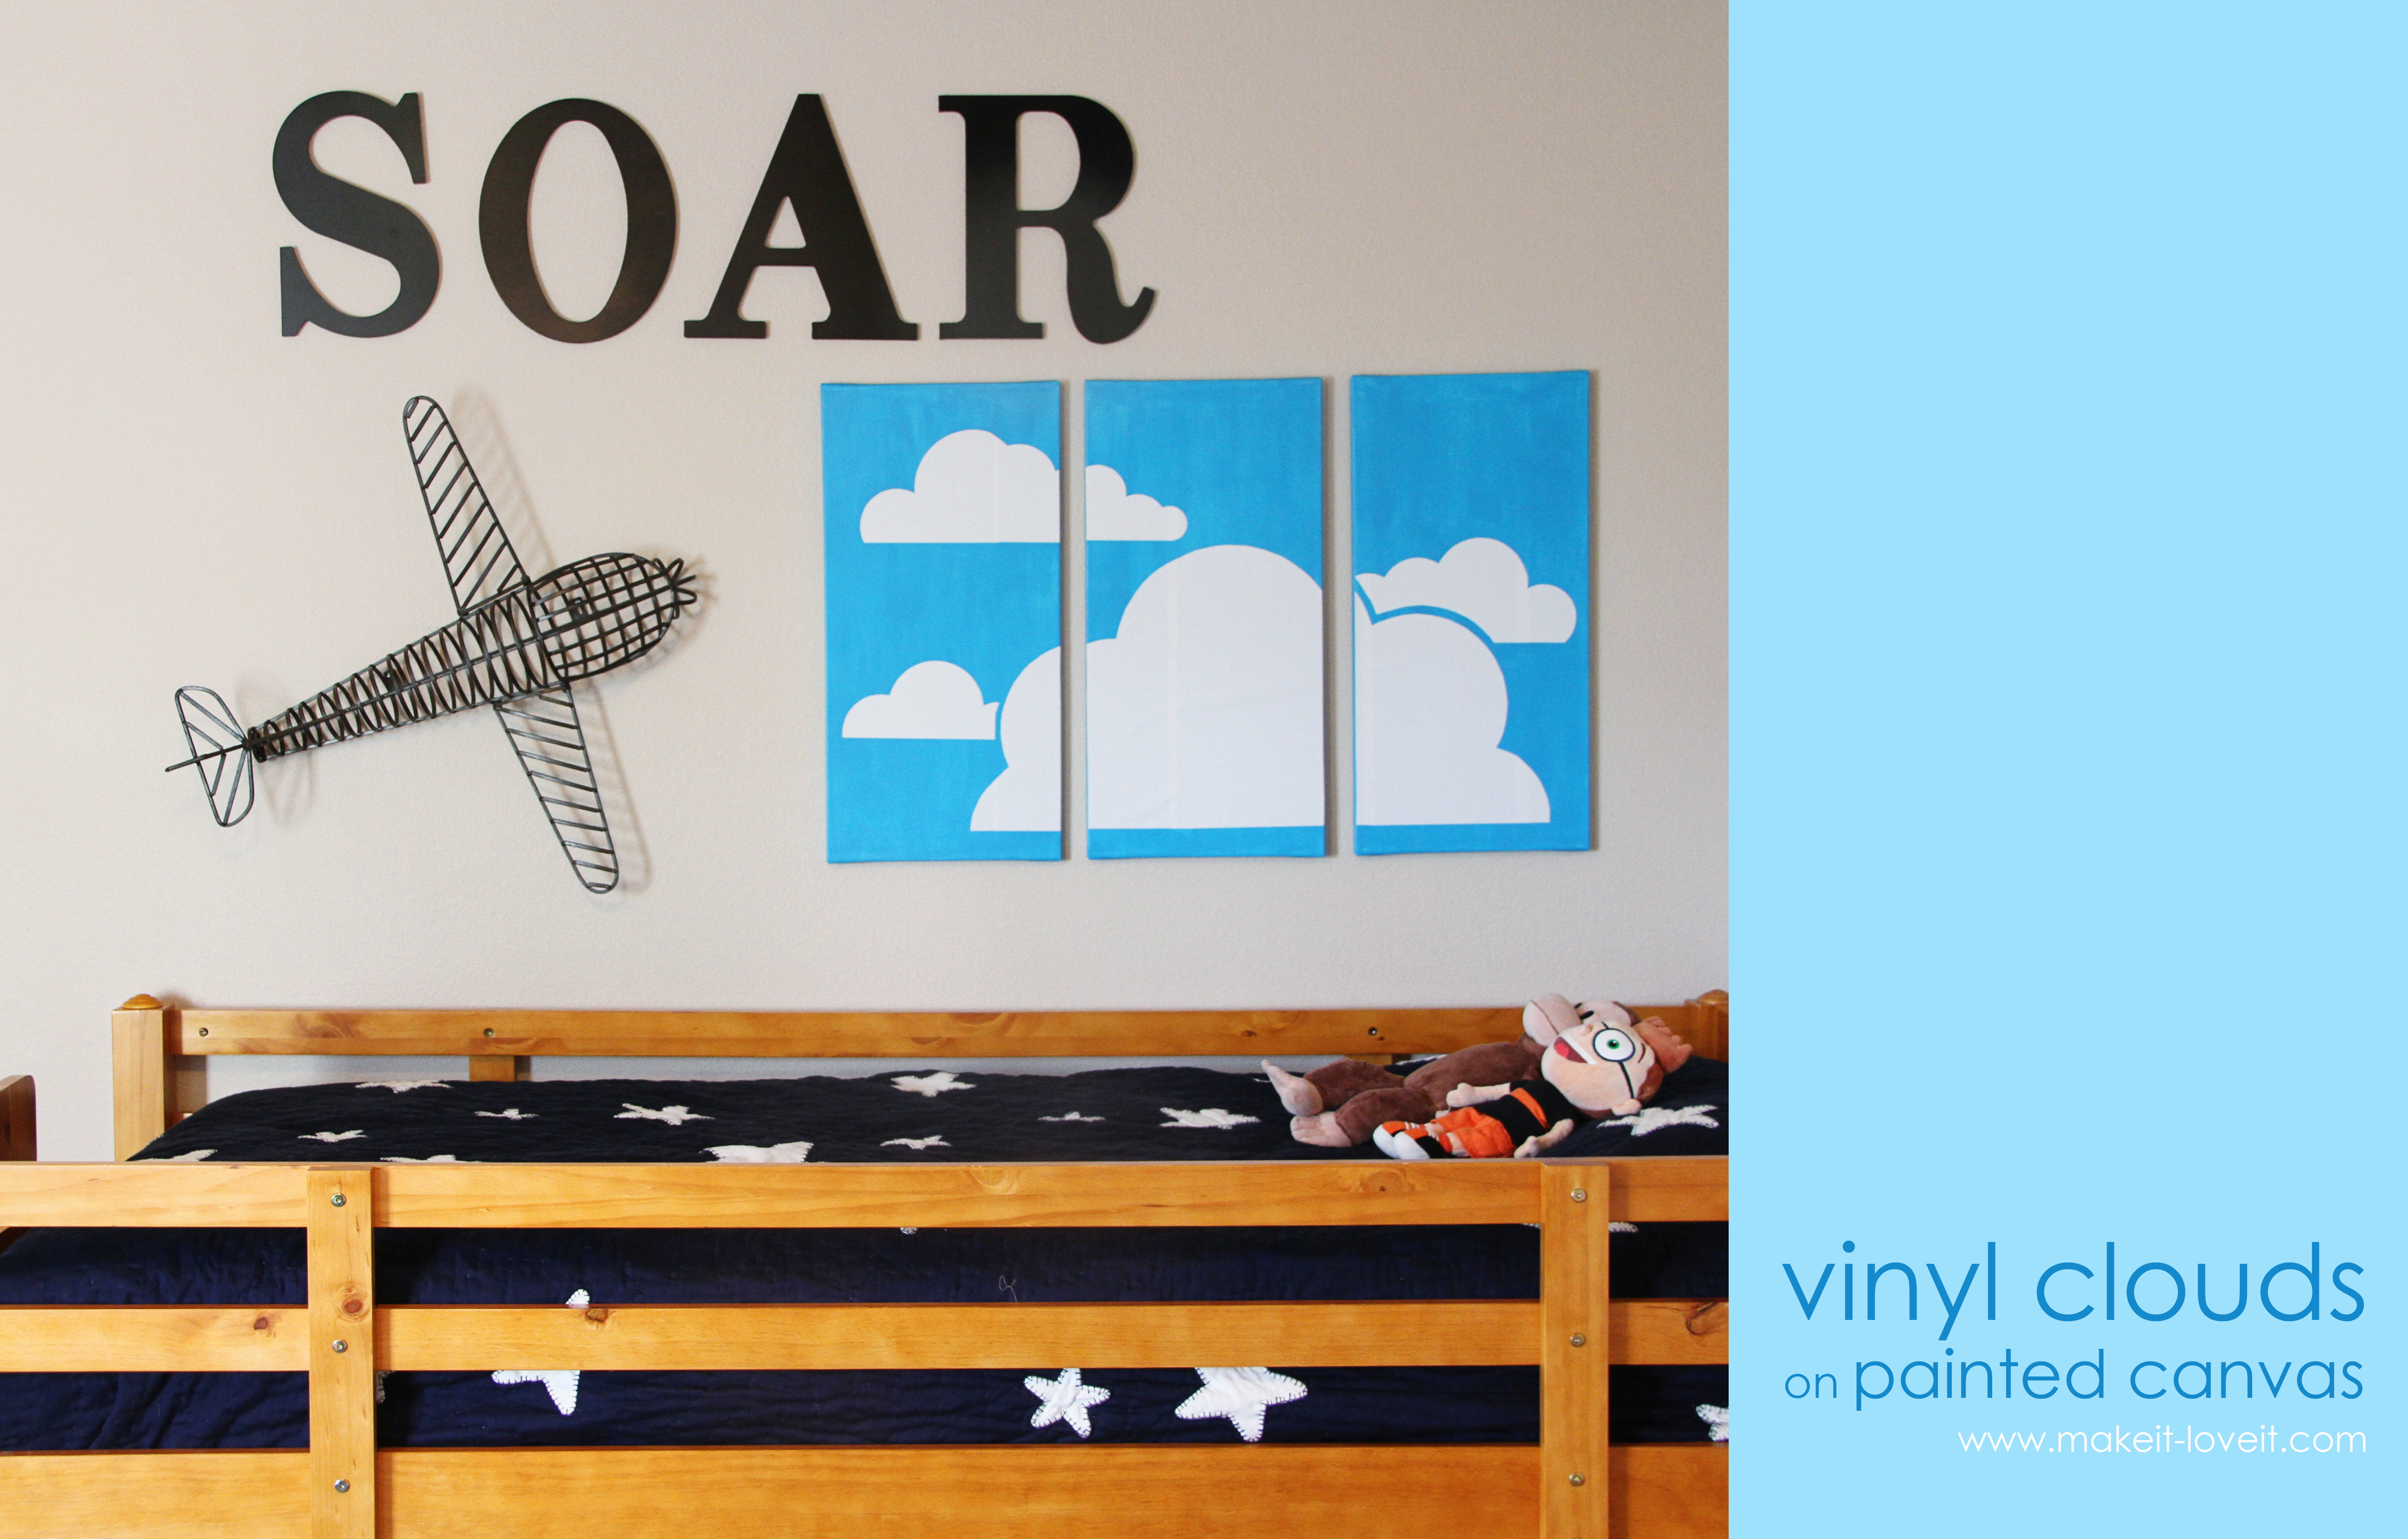 Best Vinyl Clouds On Painted Canvas Boys Room Wall Decor This Month